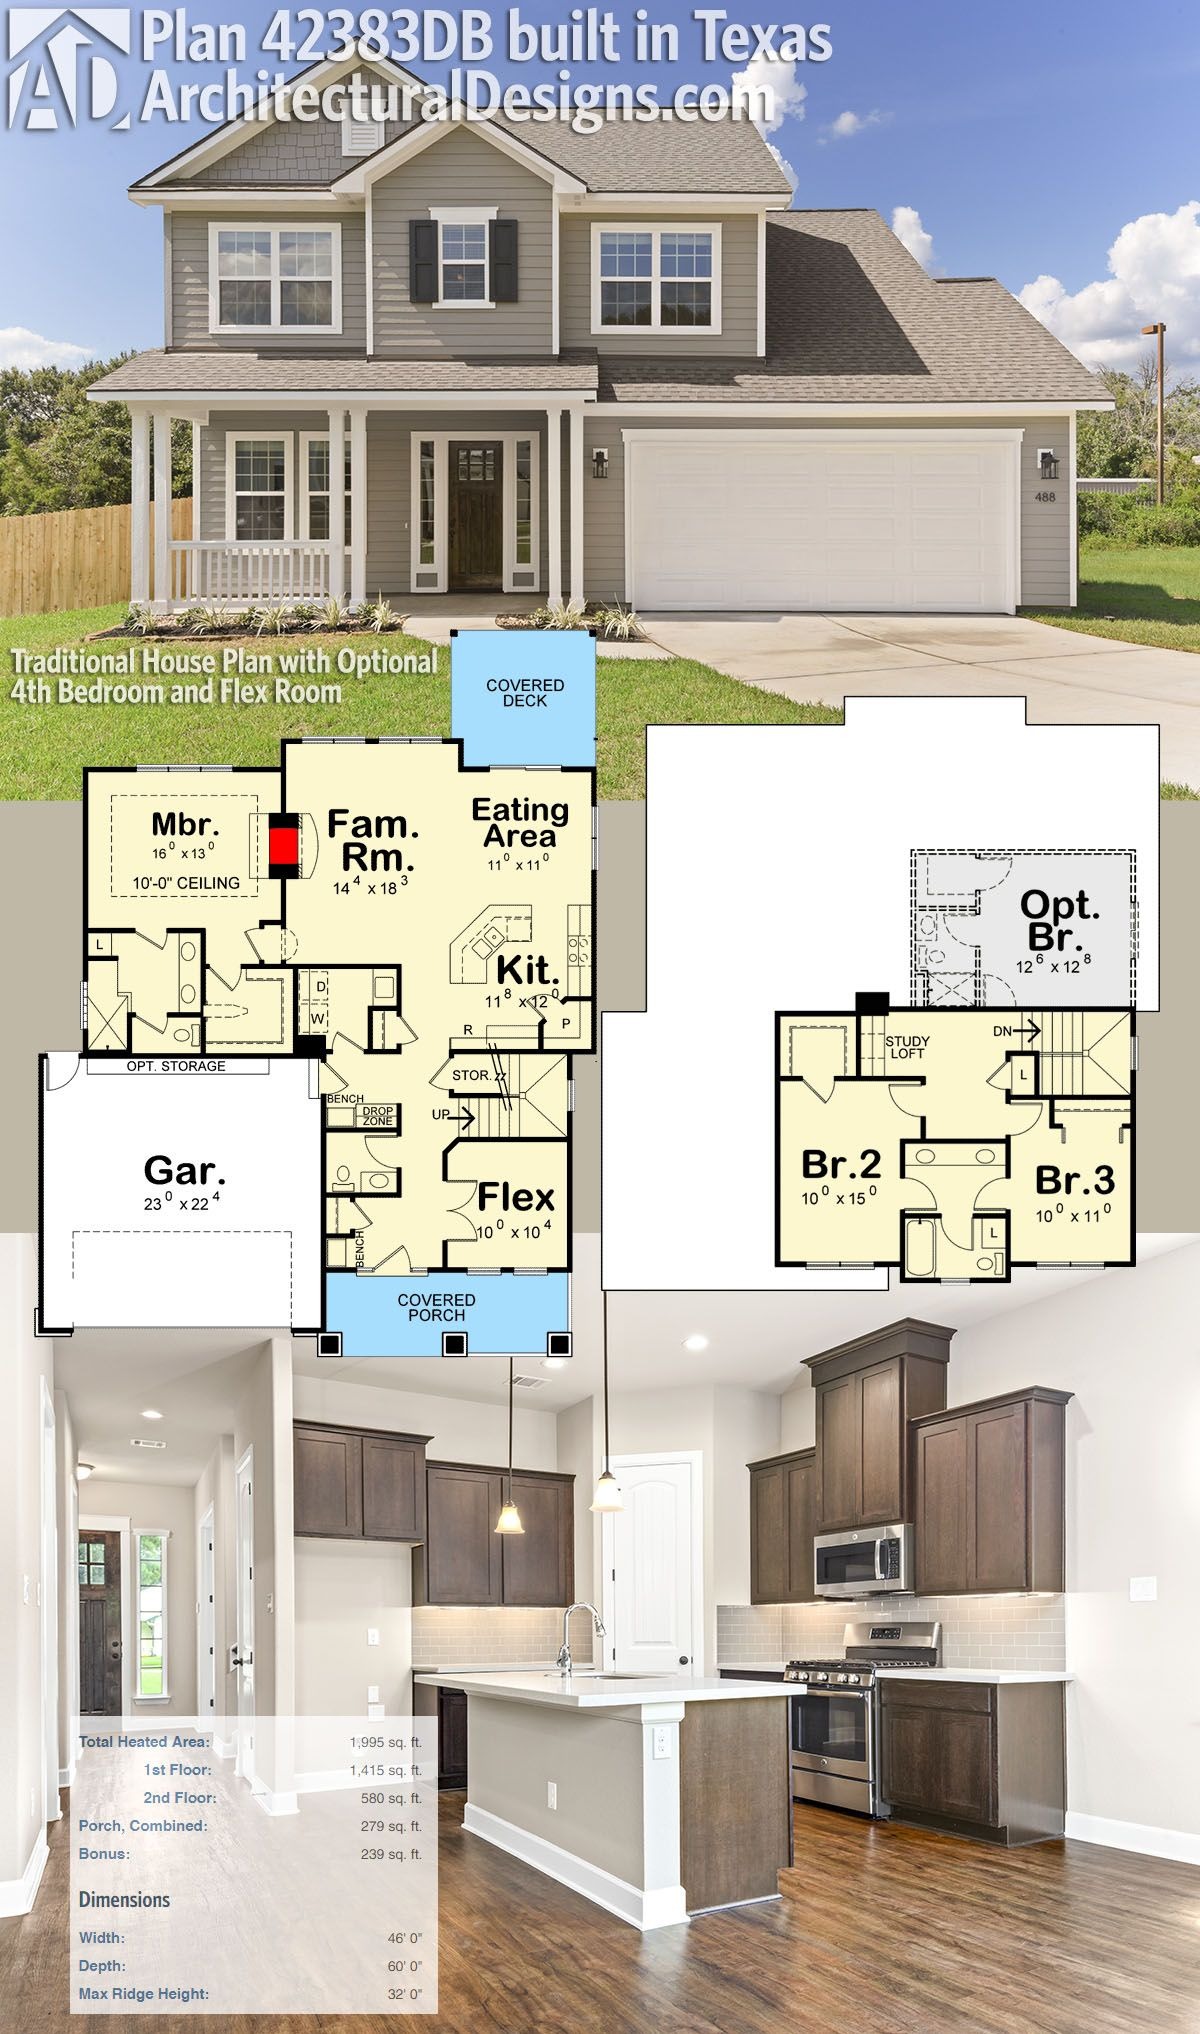 Plan 42383db Traditional House Plan With Optional 4th Bedroom And Flex Room New House Plans Traditional House Plans House Plans